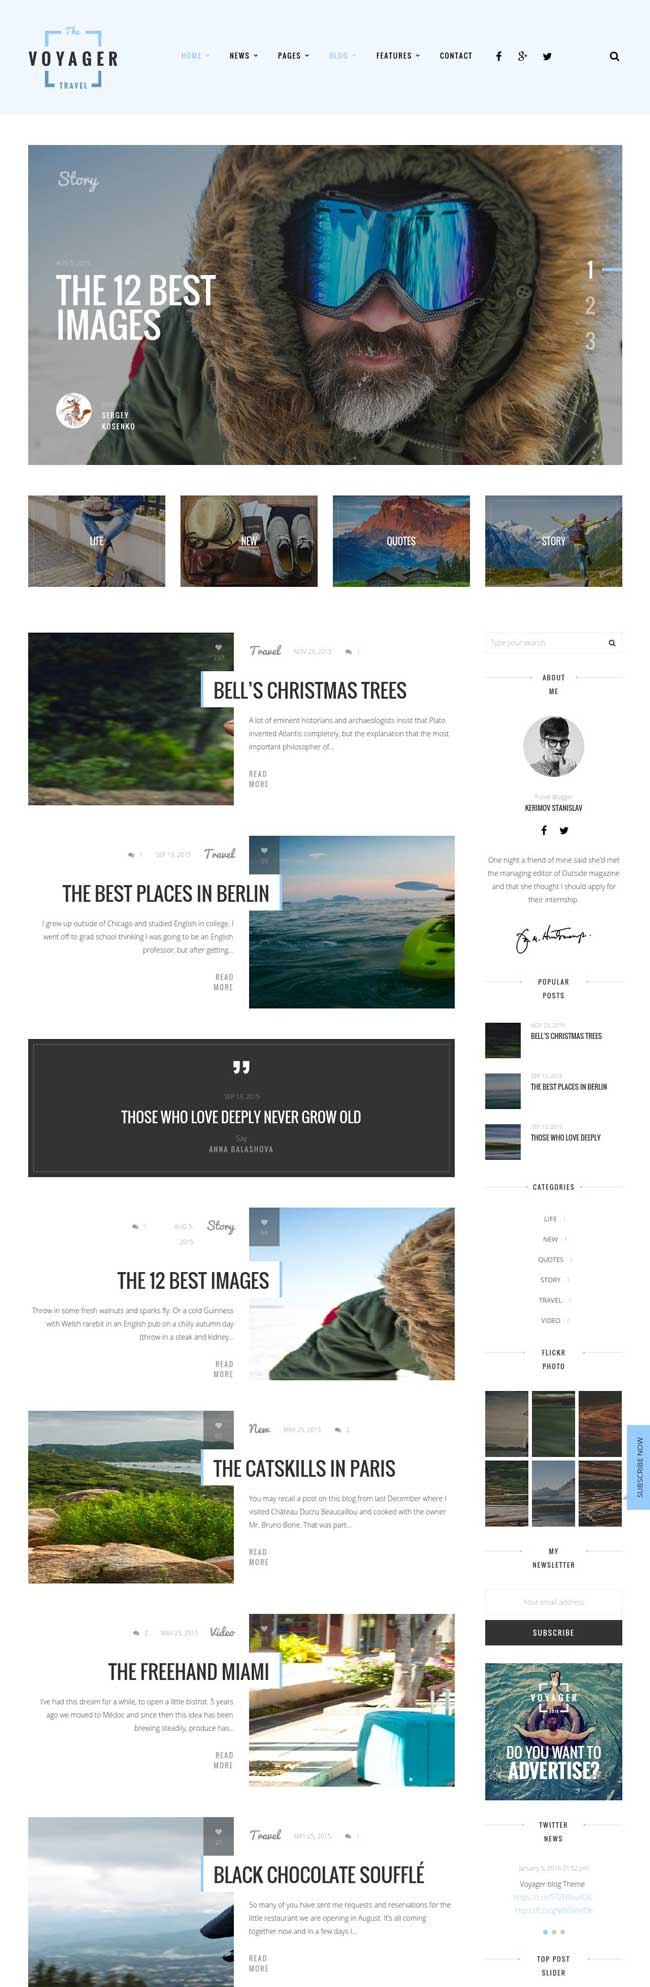 Voyager-Creative-Travel-Blog-Wordpress-Theme